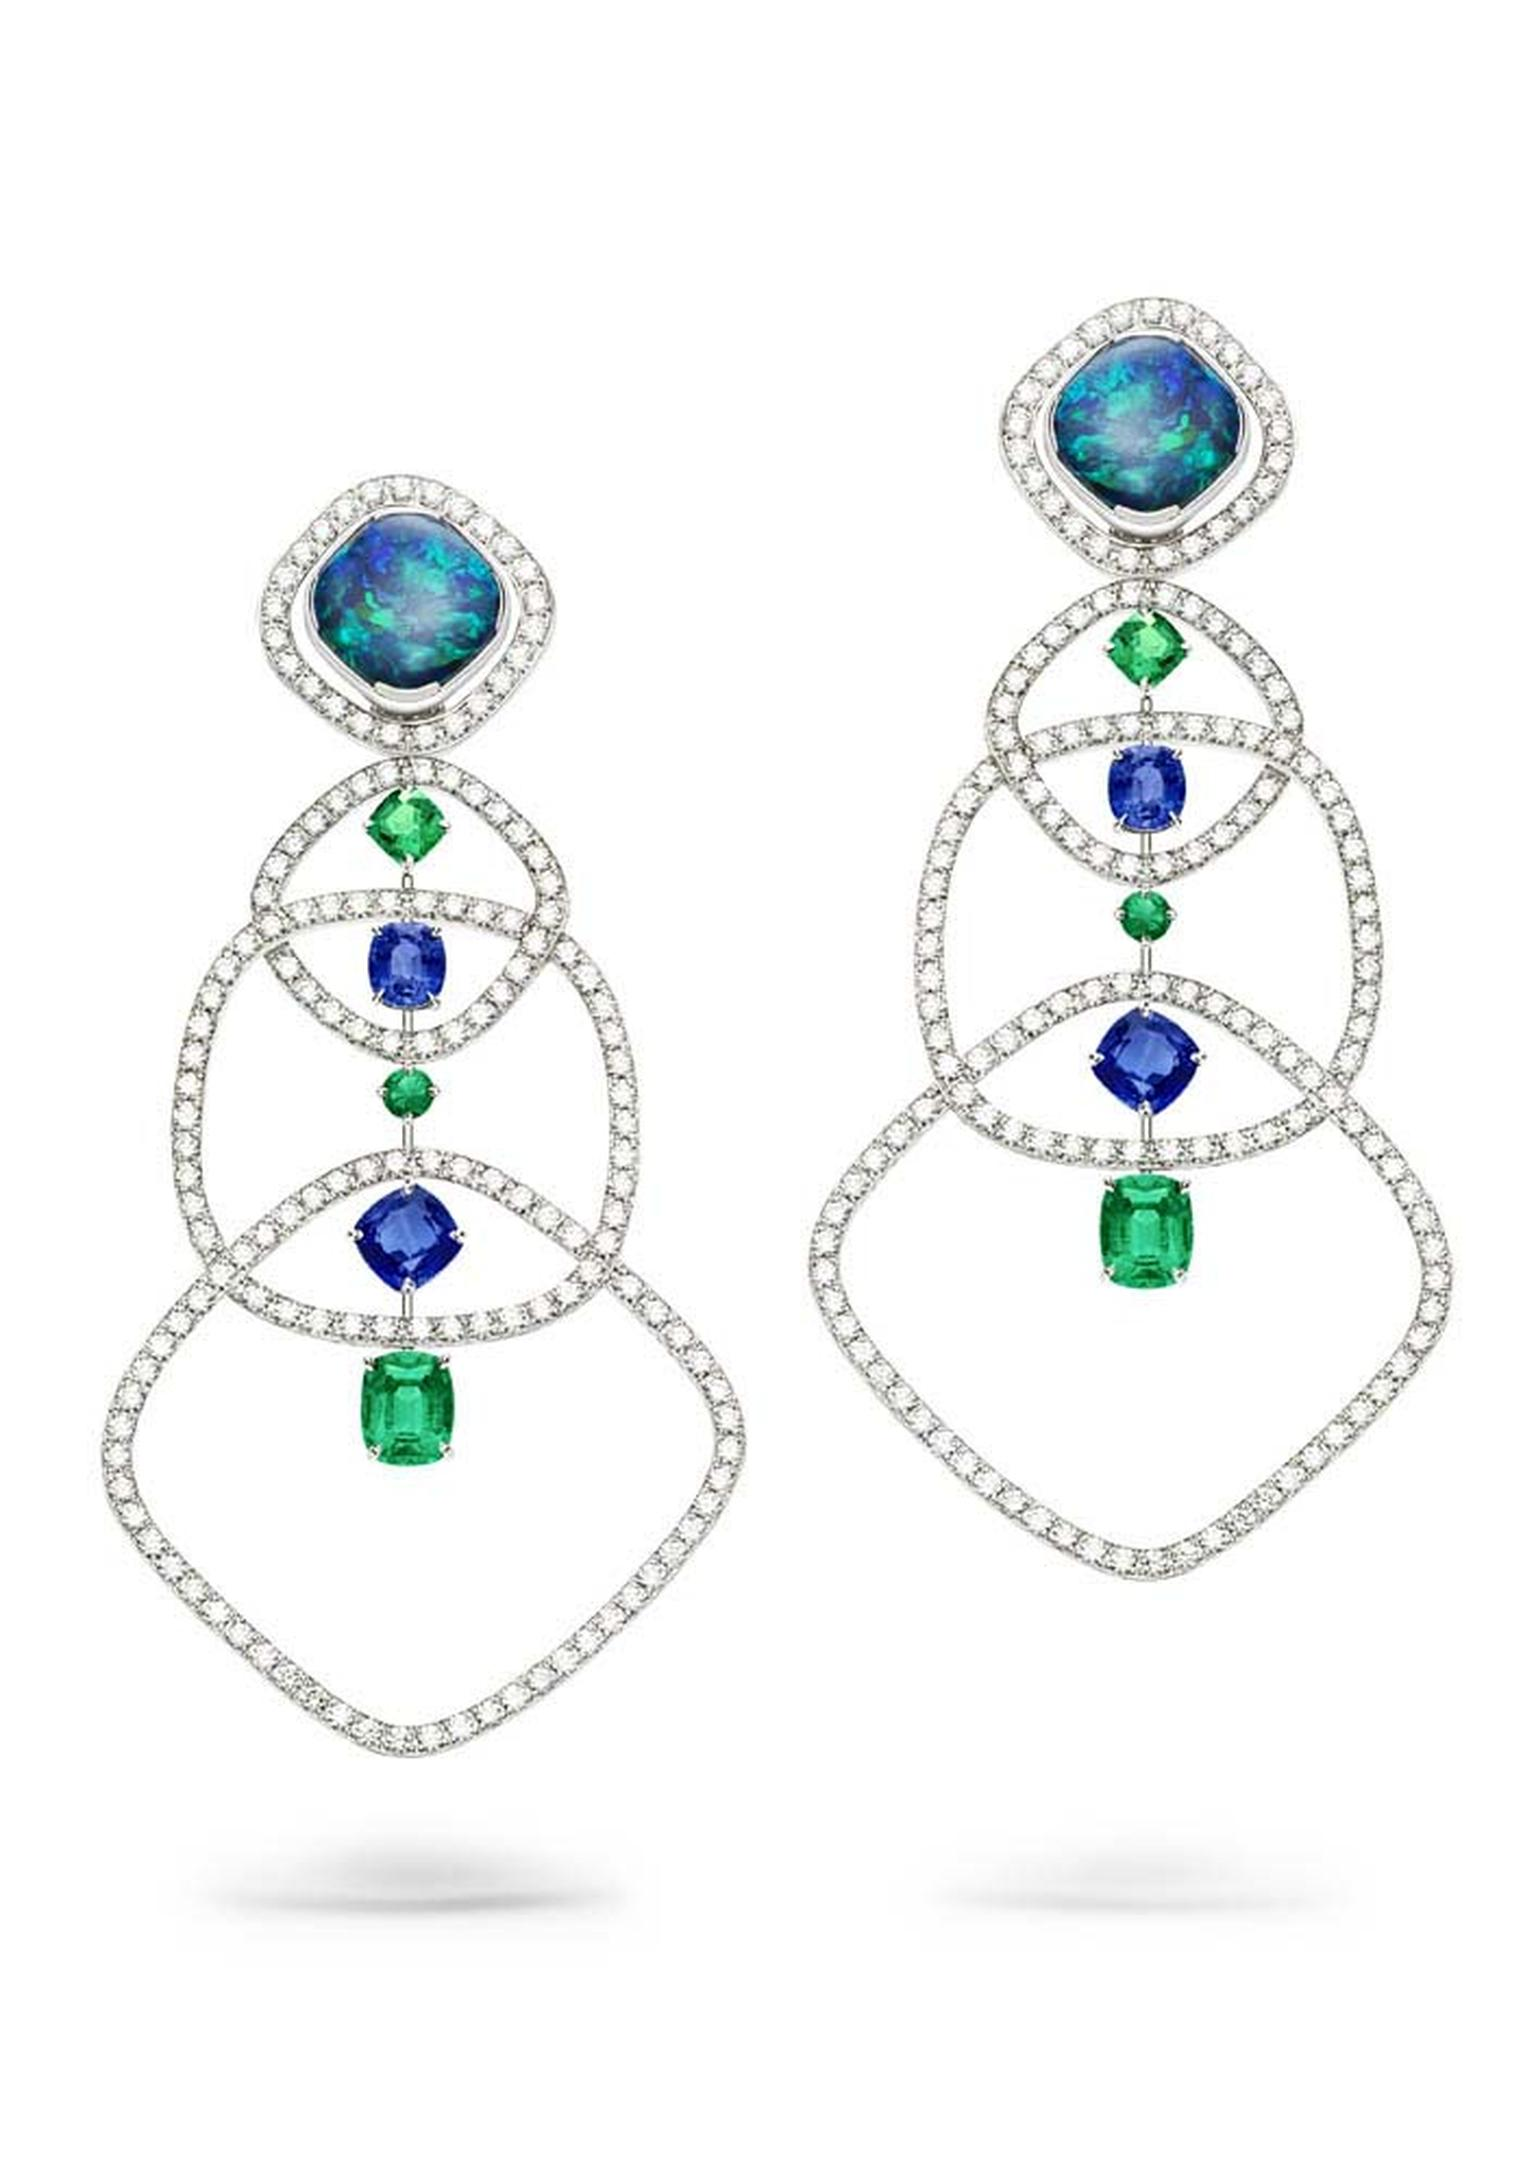 Mix and match your earrings with the opal-dial cuff watch in these Extremely Piaget earrings in white gold set with two cushion-cut black opals, brilliant-cut diamonds, blue sapphires and emeralds.